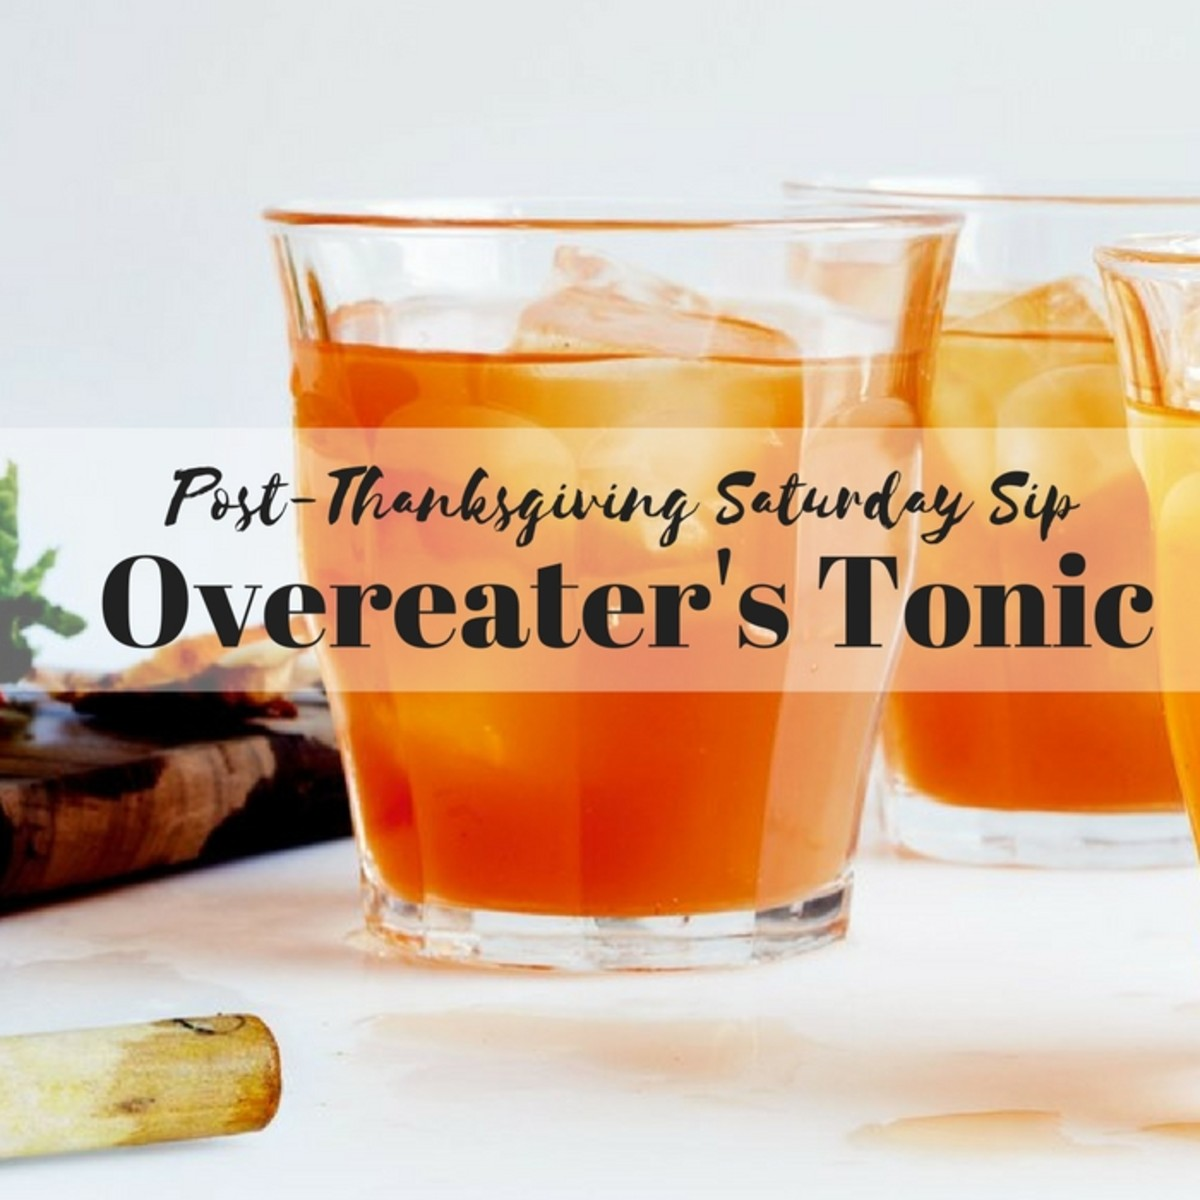 Saturday Sip Overeater's Tonic